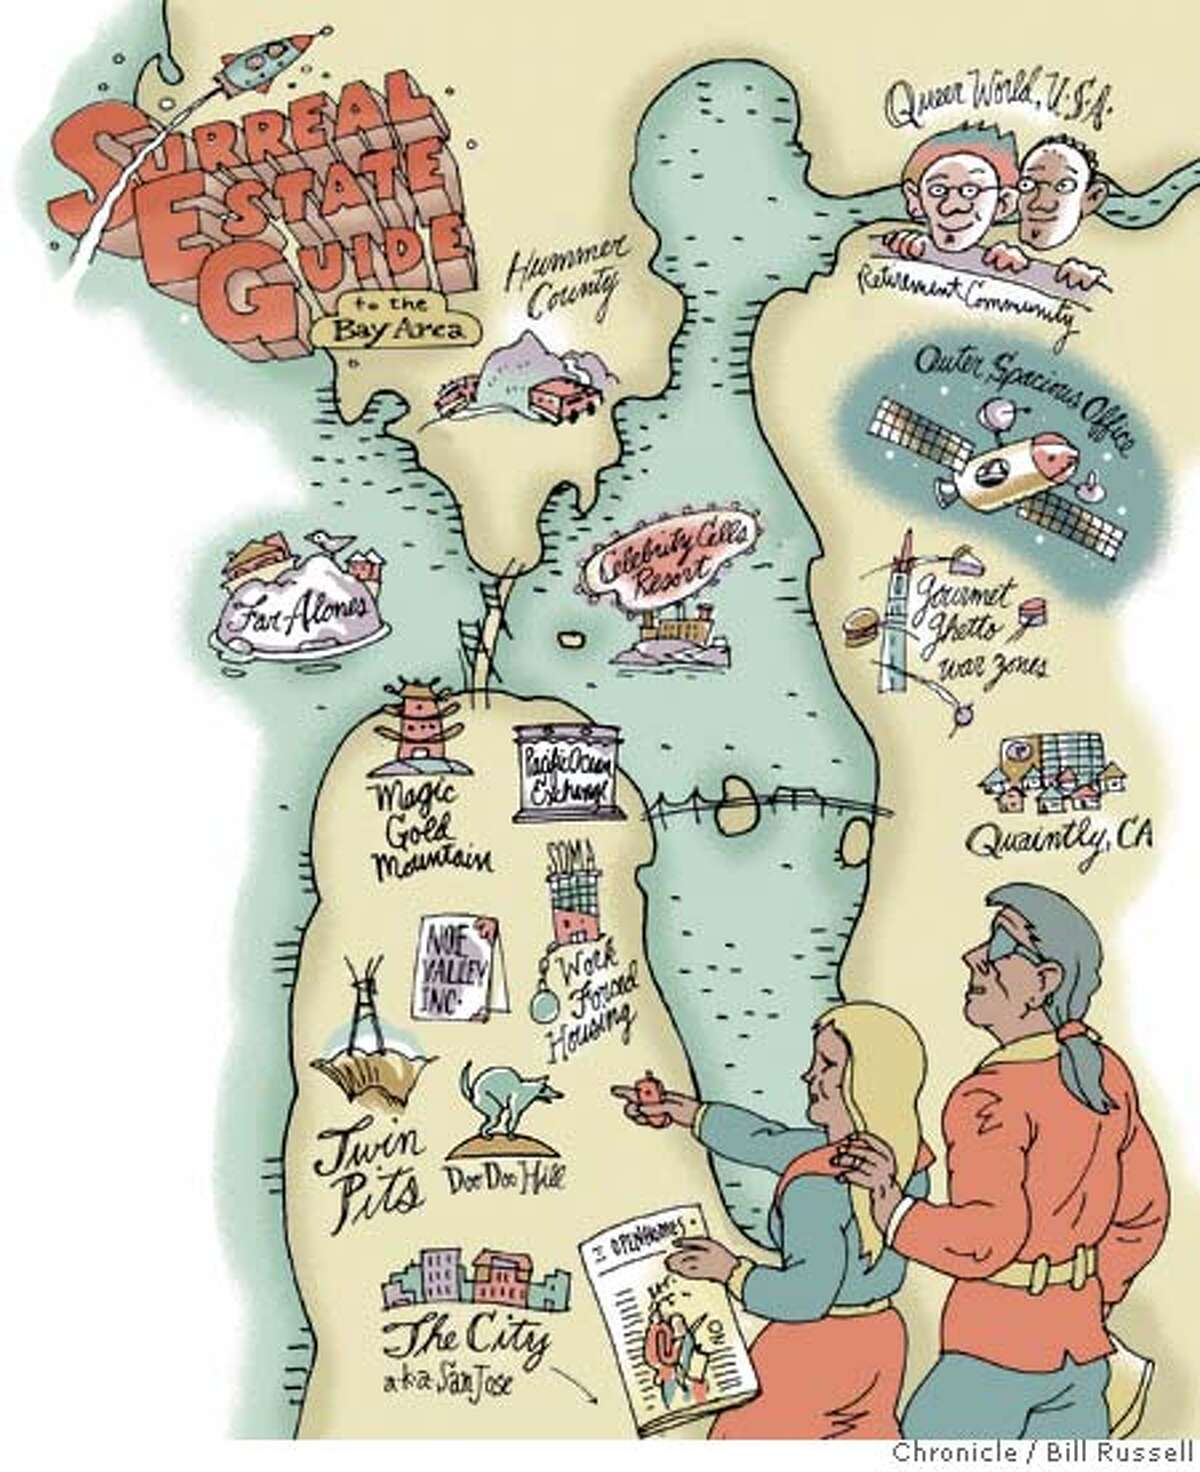 Surreal Estate Guide to the Bay Area. Chronicle Illustration by Bill Russell